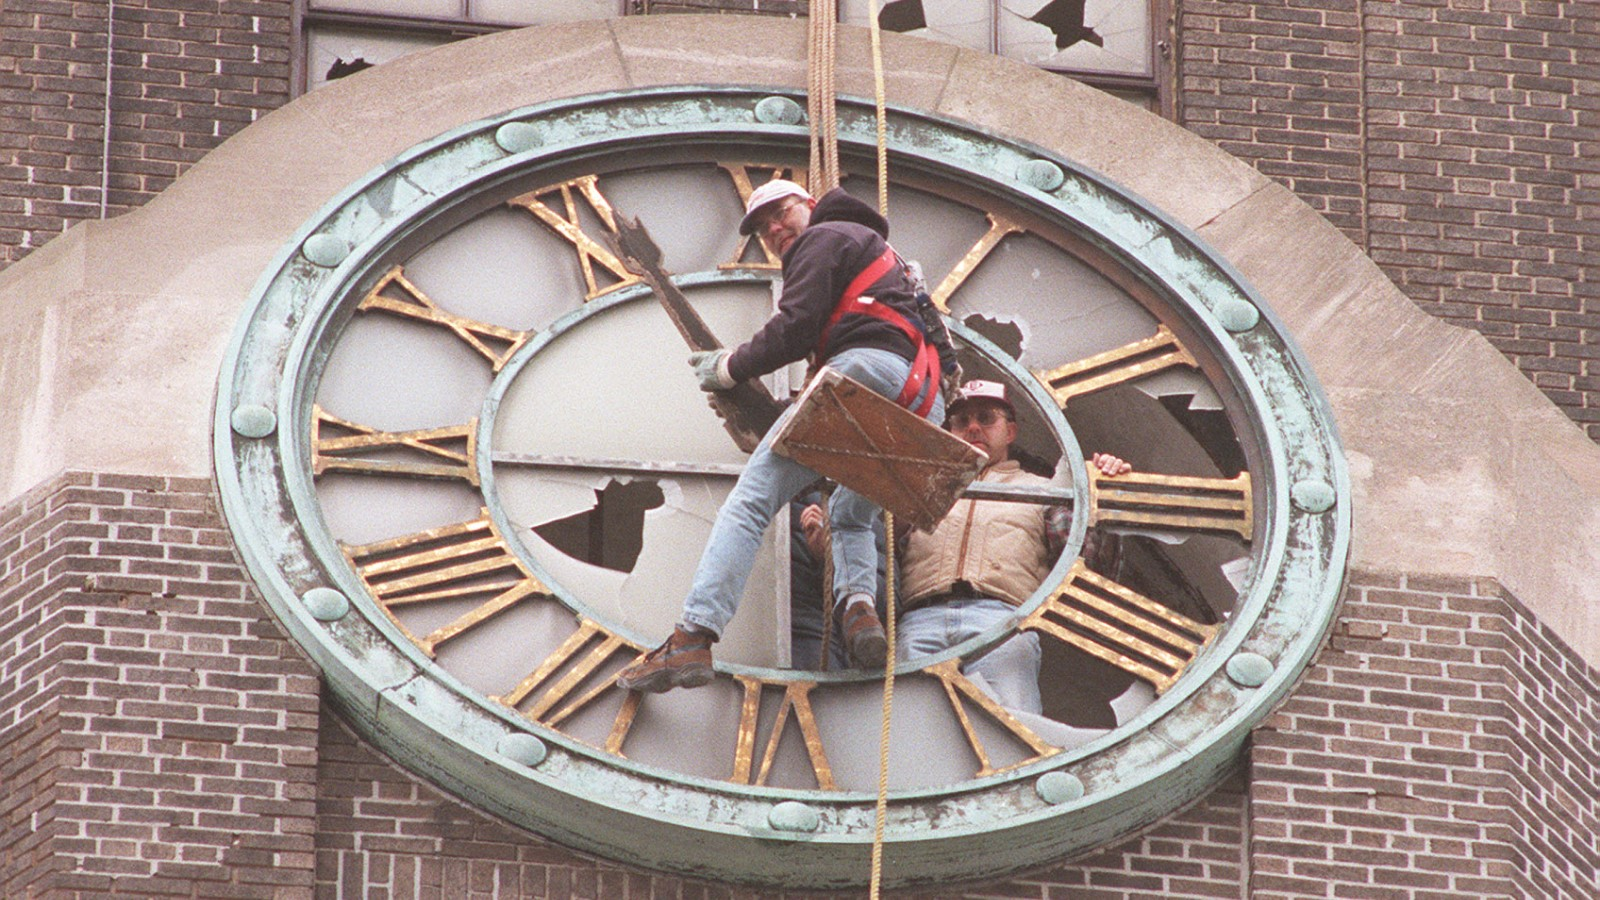 On April 23, 1999, Jeff Ingersoll dangles from the Central Terminal as restoration work began on the clock. Mike Peglau of the Central Terminal Advisory Committee appears beside him. (Buffalo News file photo)